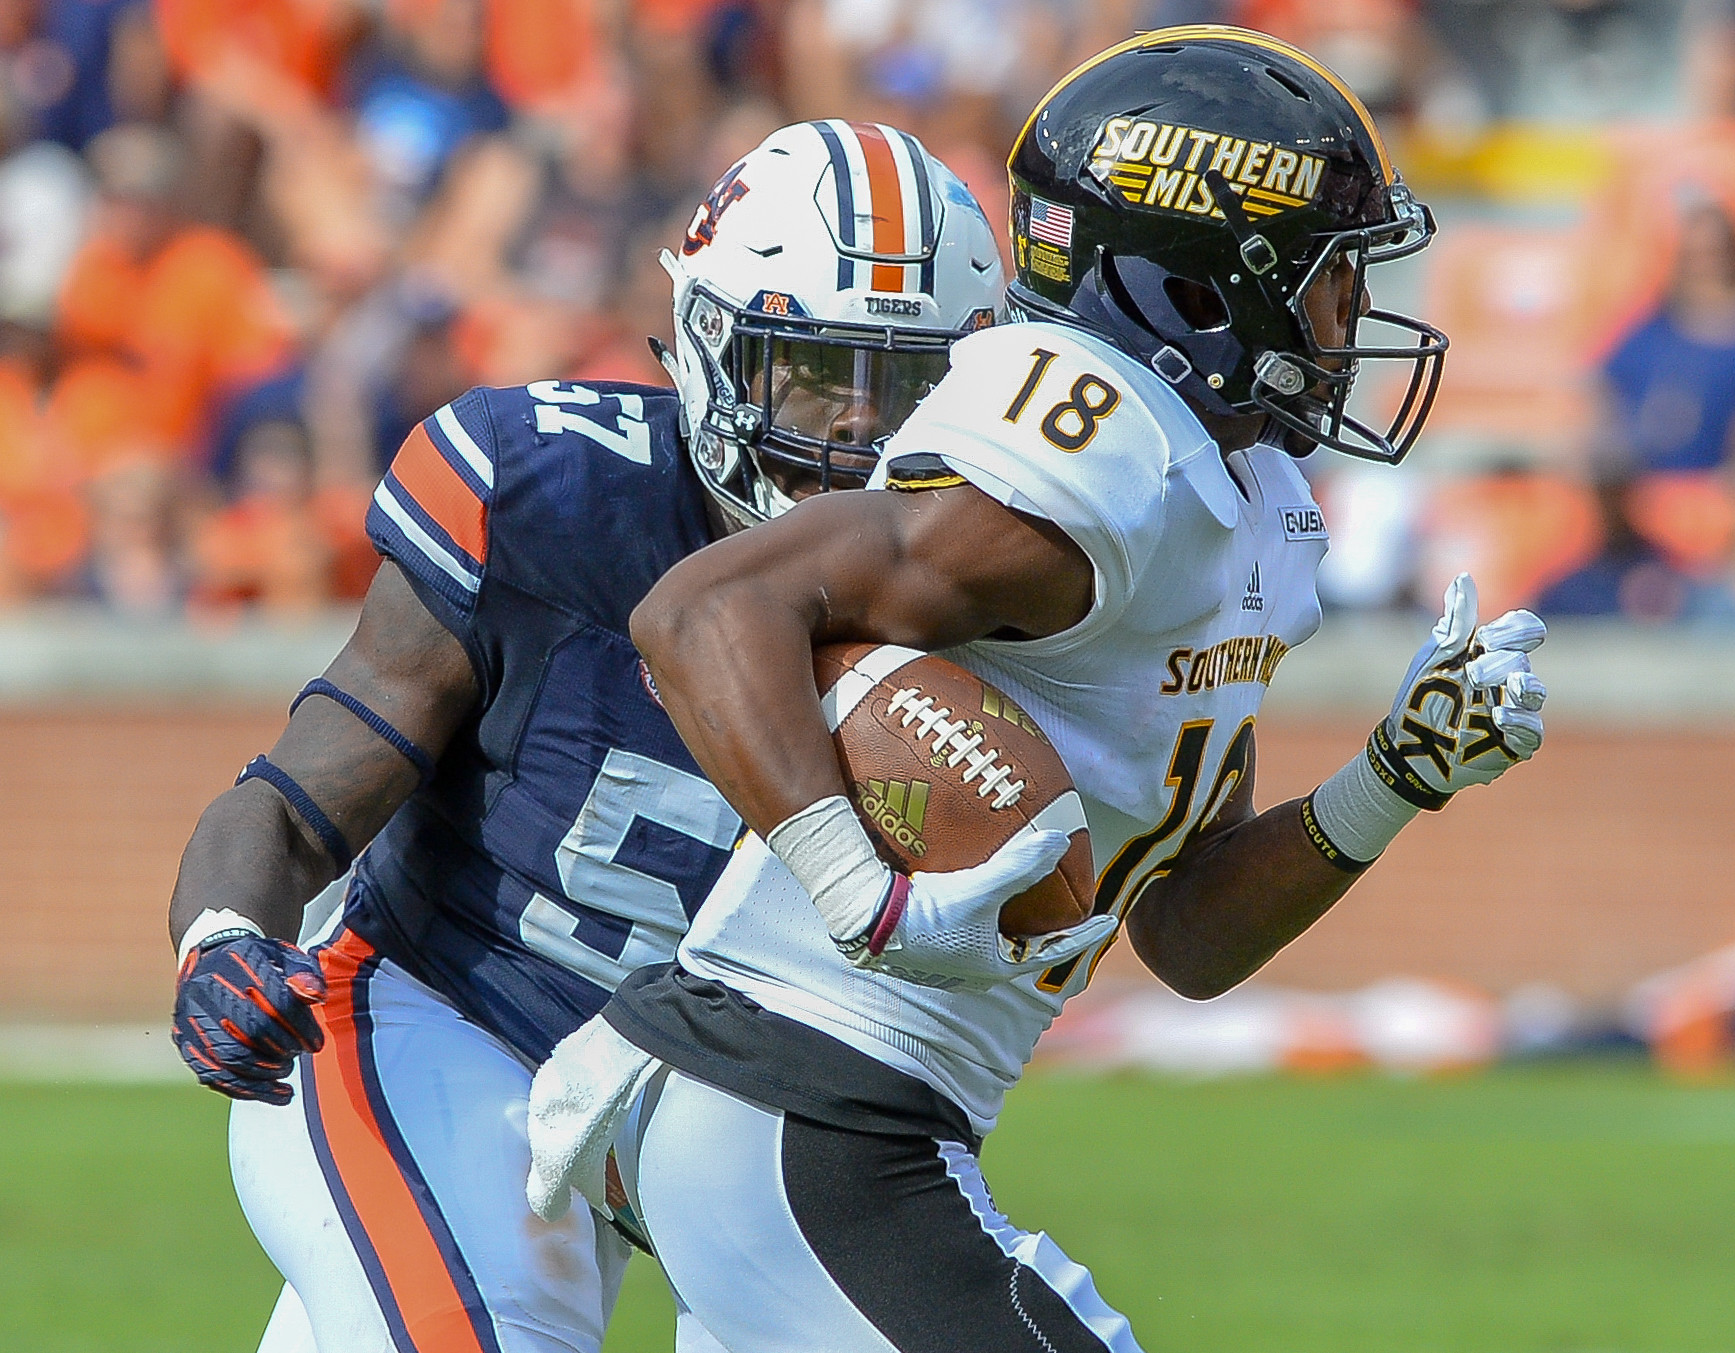 Auburn Tigers linebacker Deshaun Davis (57) closes in on Southern Miss Golden Eagles wide receiver De'Michael Harris (18) during the first half of Saturday's game, at Jordan Hare Stadium in Auburn AL. Daily Mountain Eagle -  Jeff Johnsey